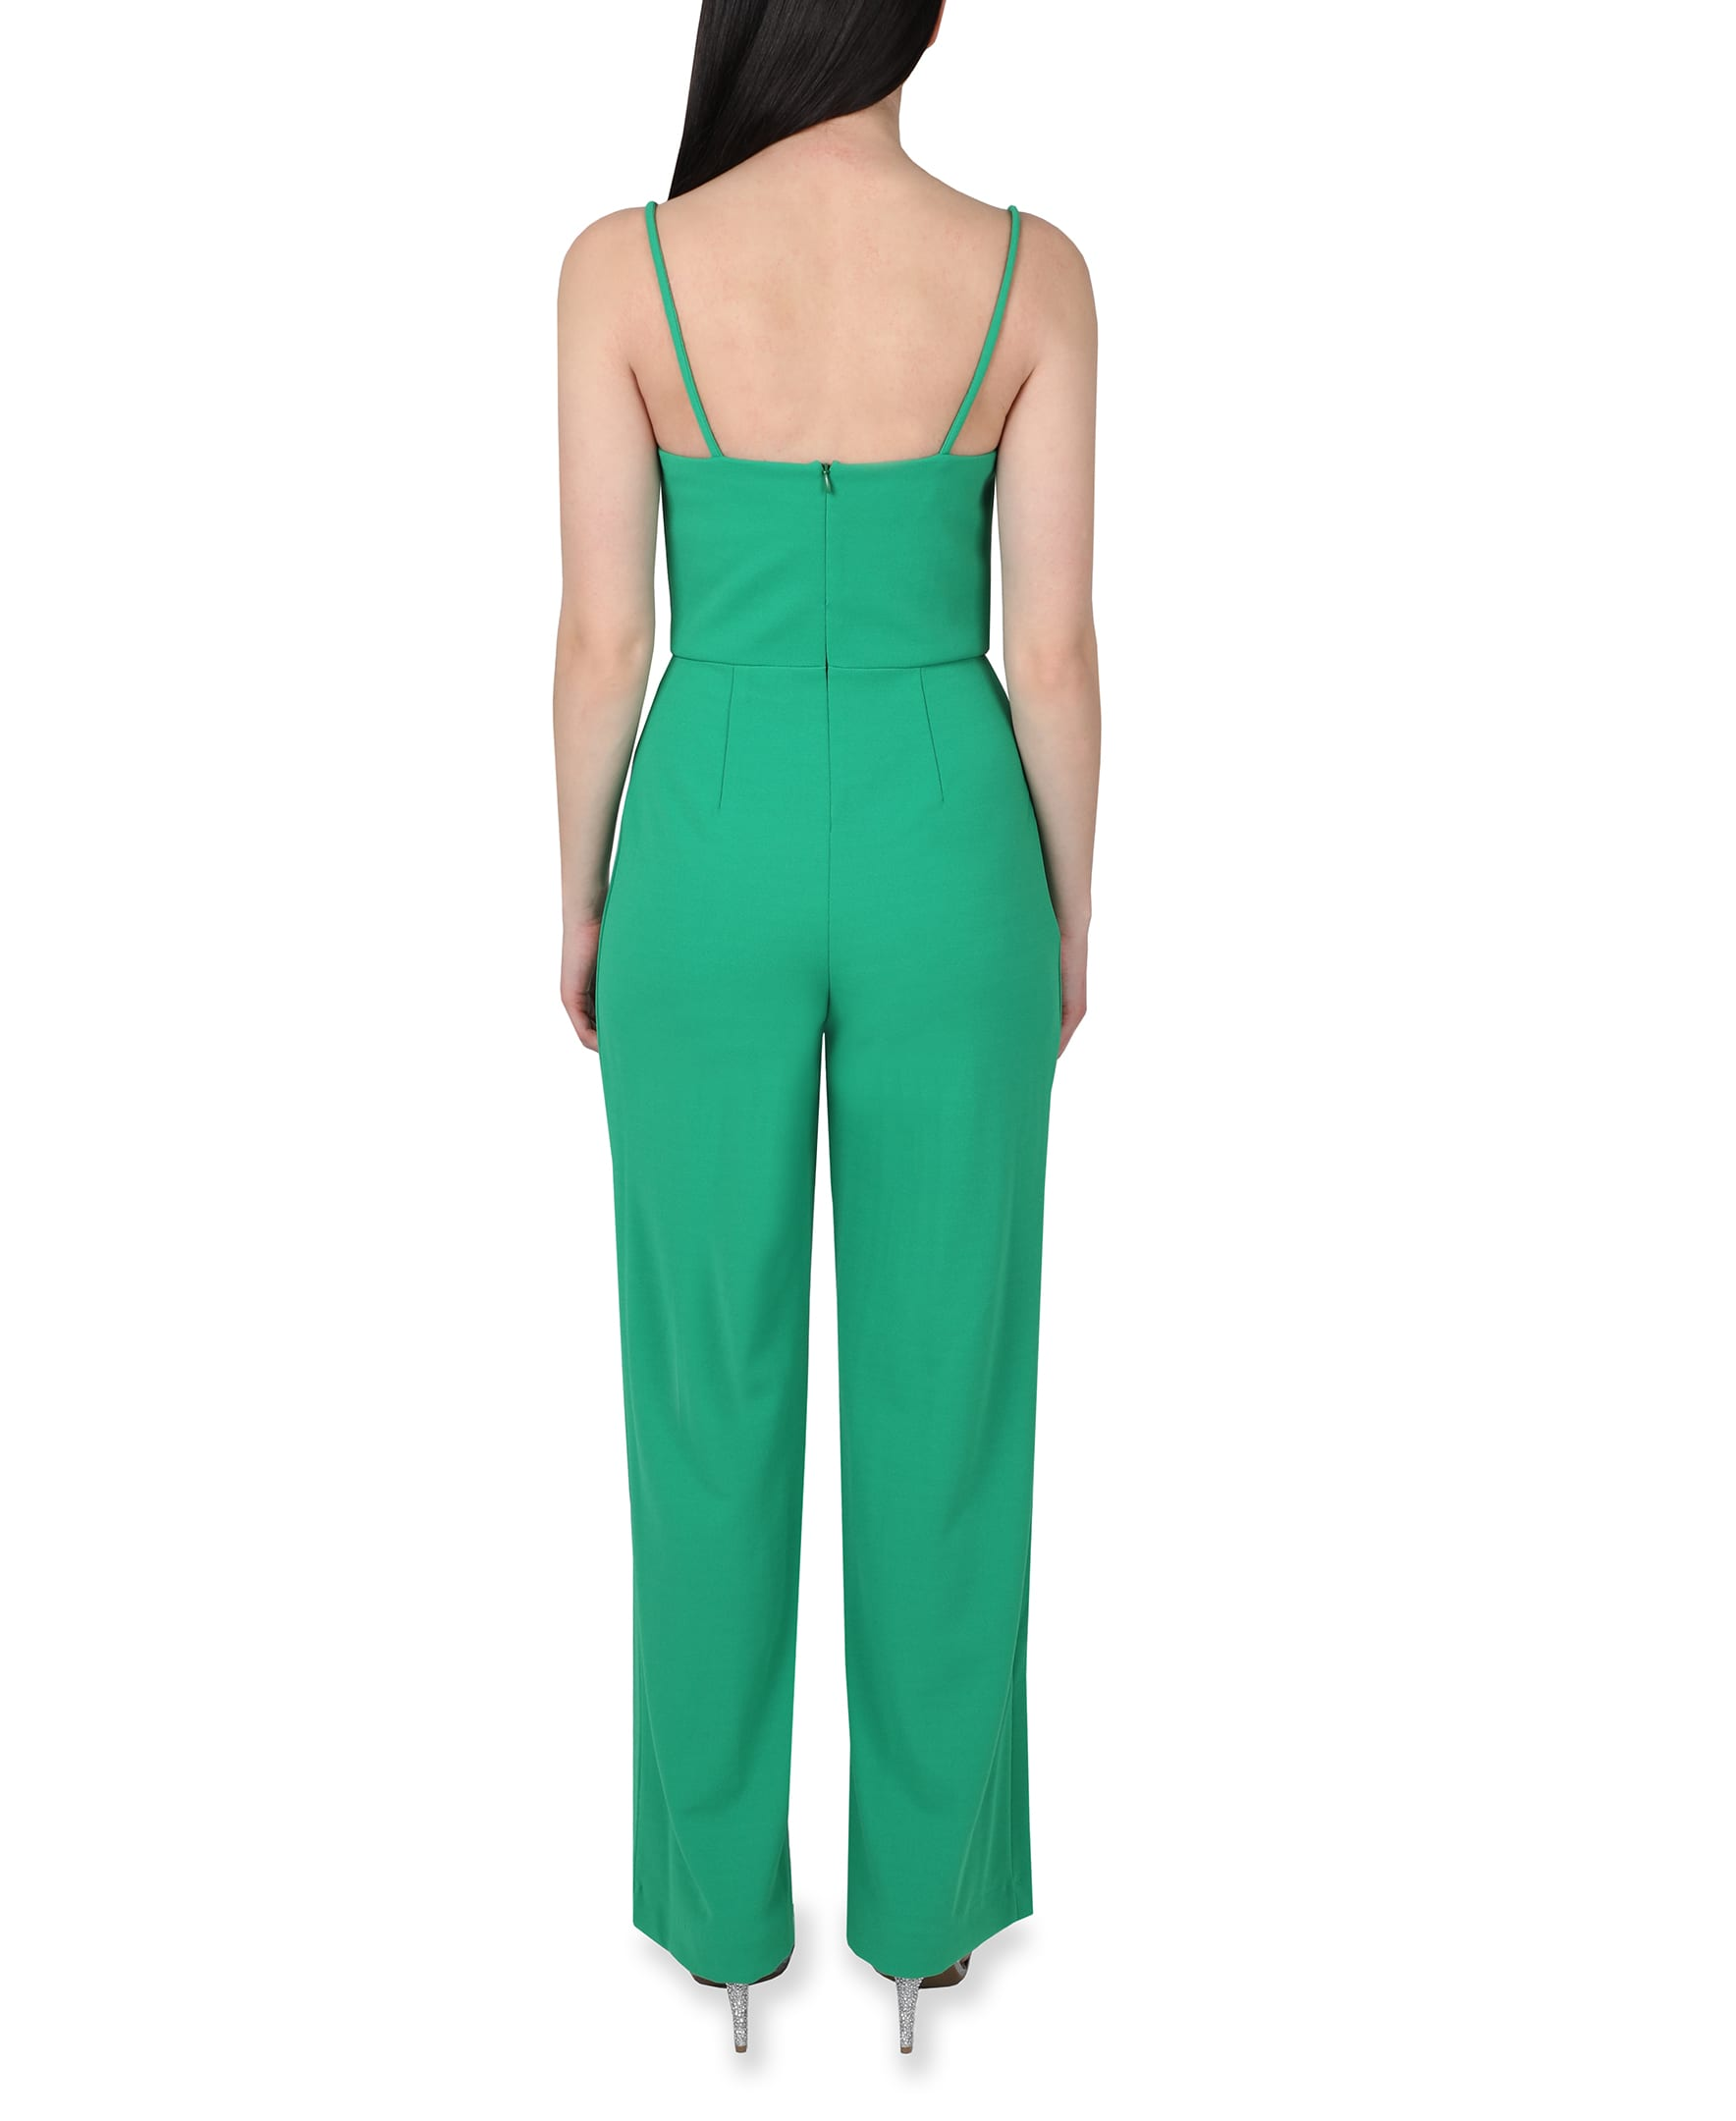 Bebe Open Leg Jumpsuit - green - Back